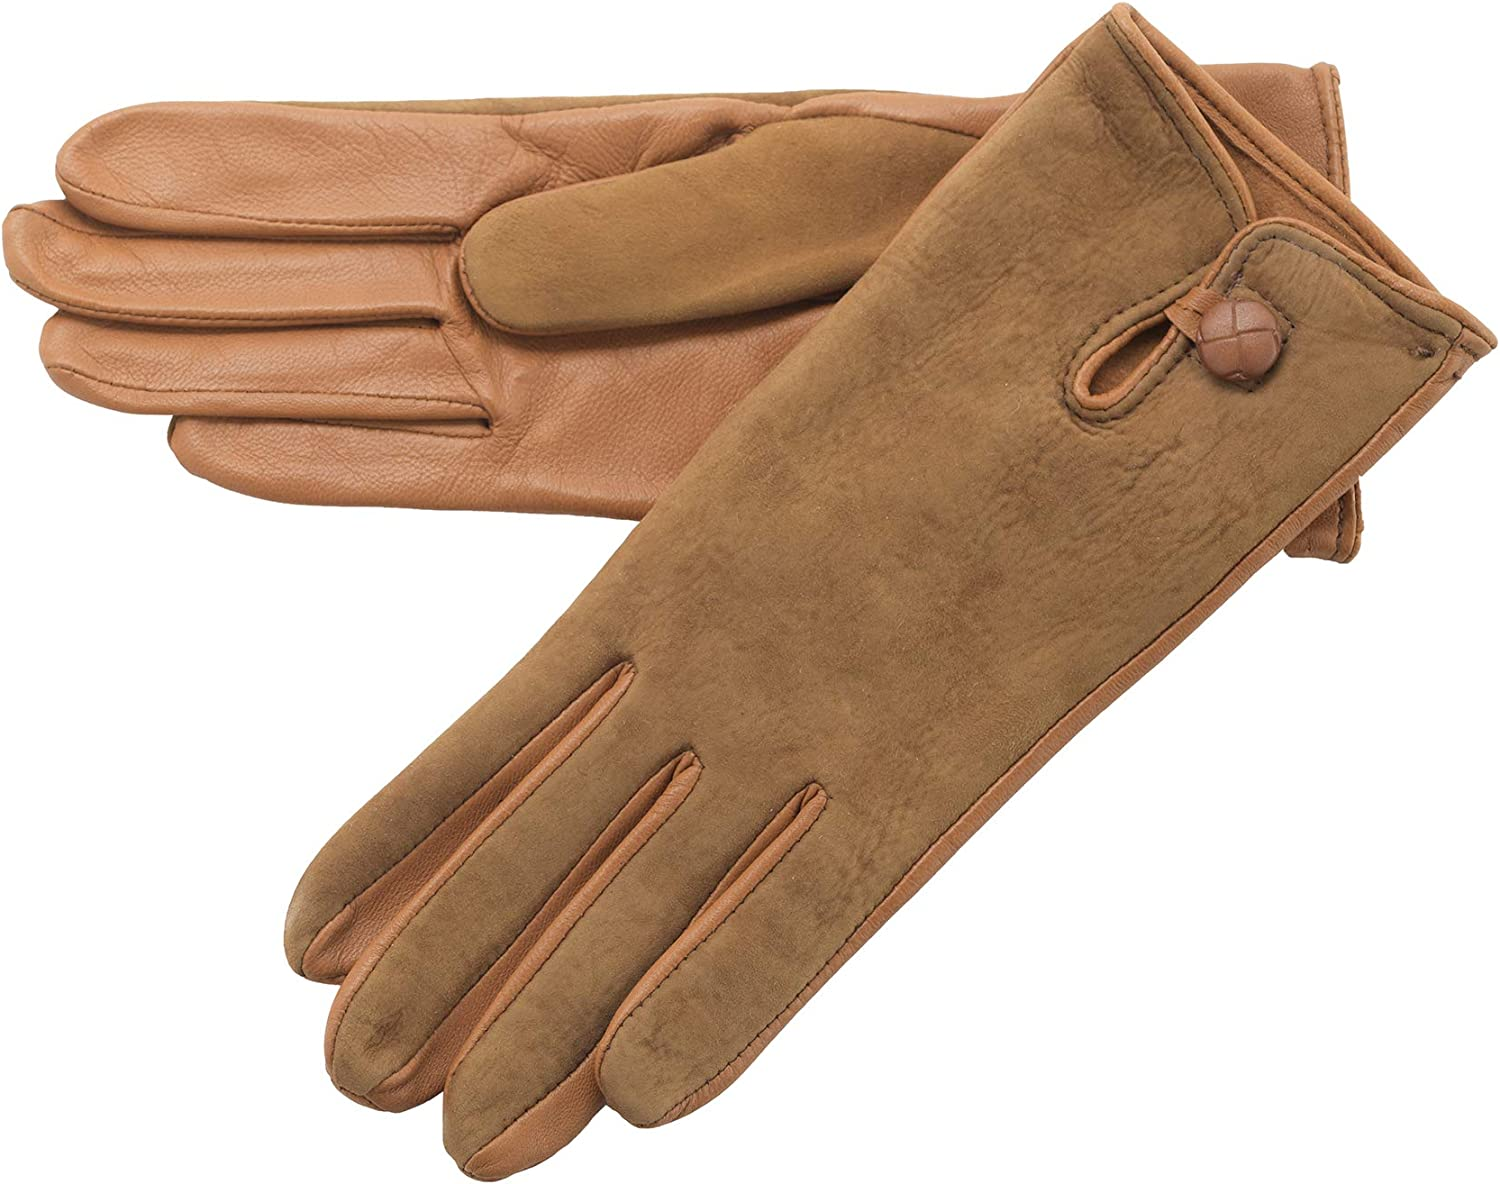 Lambland Ladies Leather Palm Lambskin Back Gloves in Tan Size Large